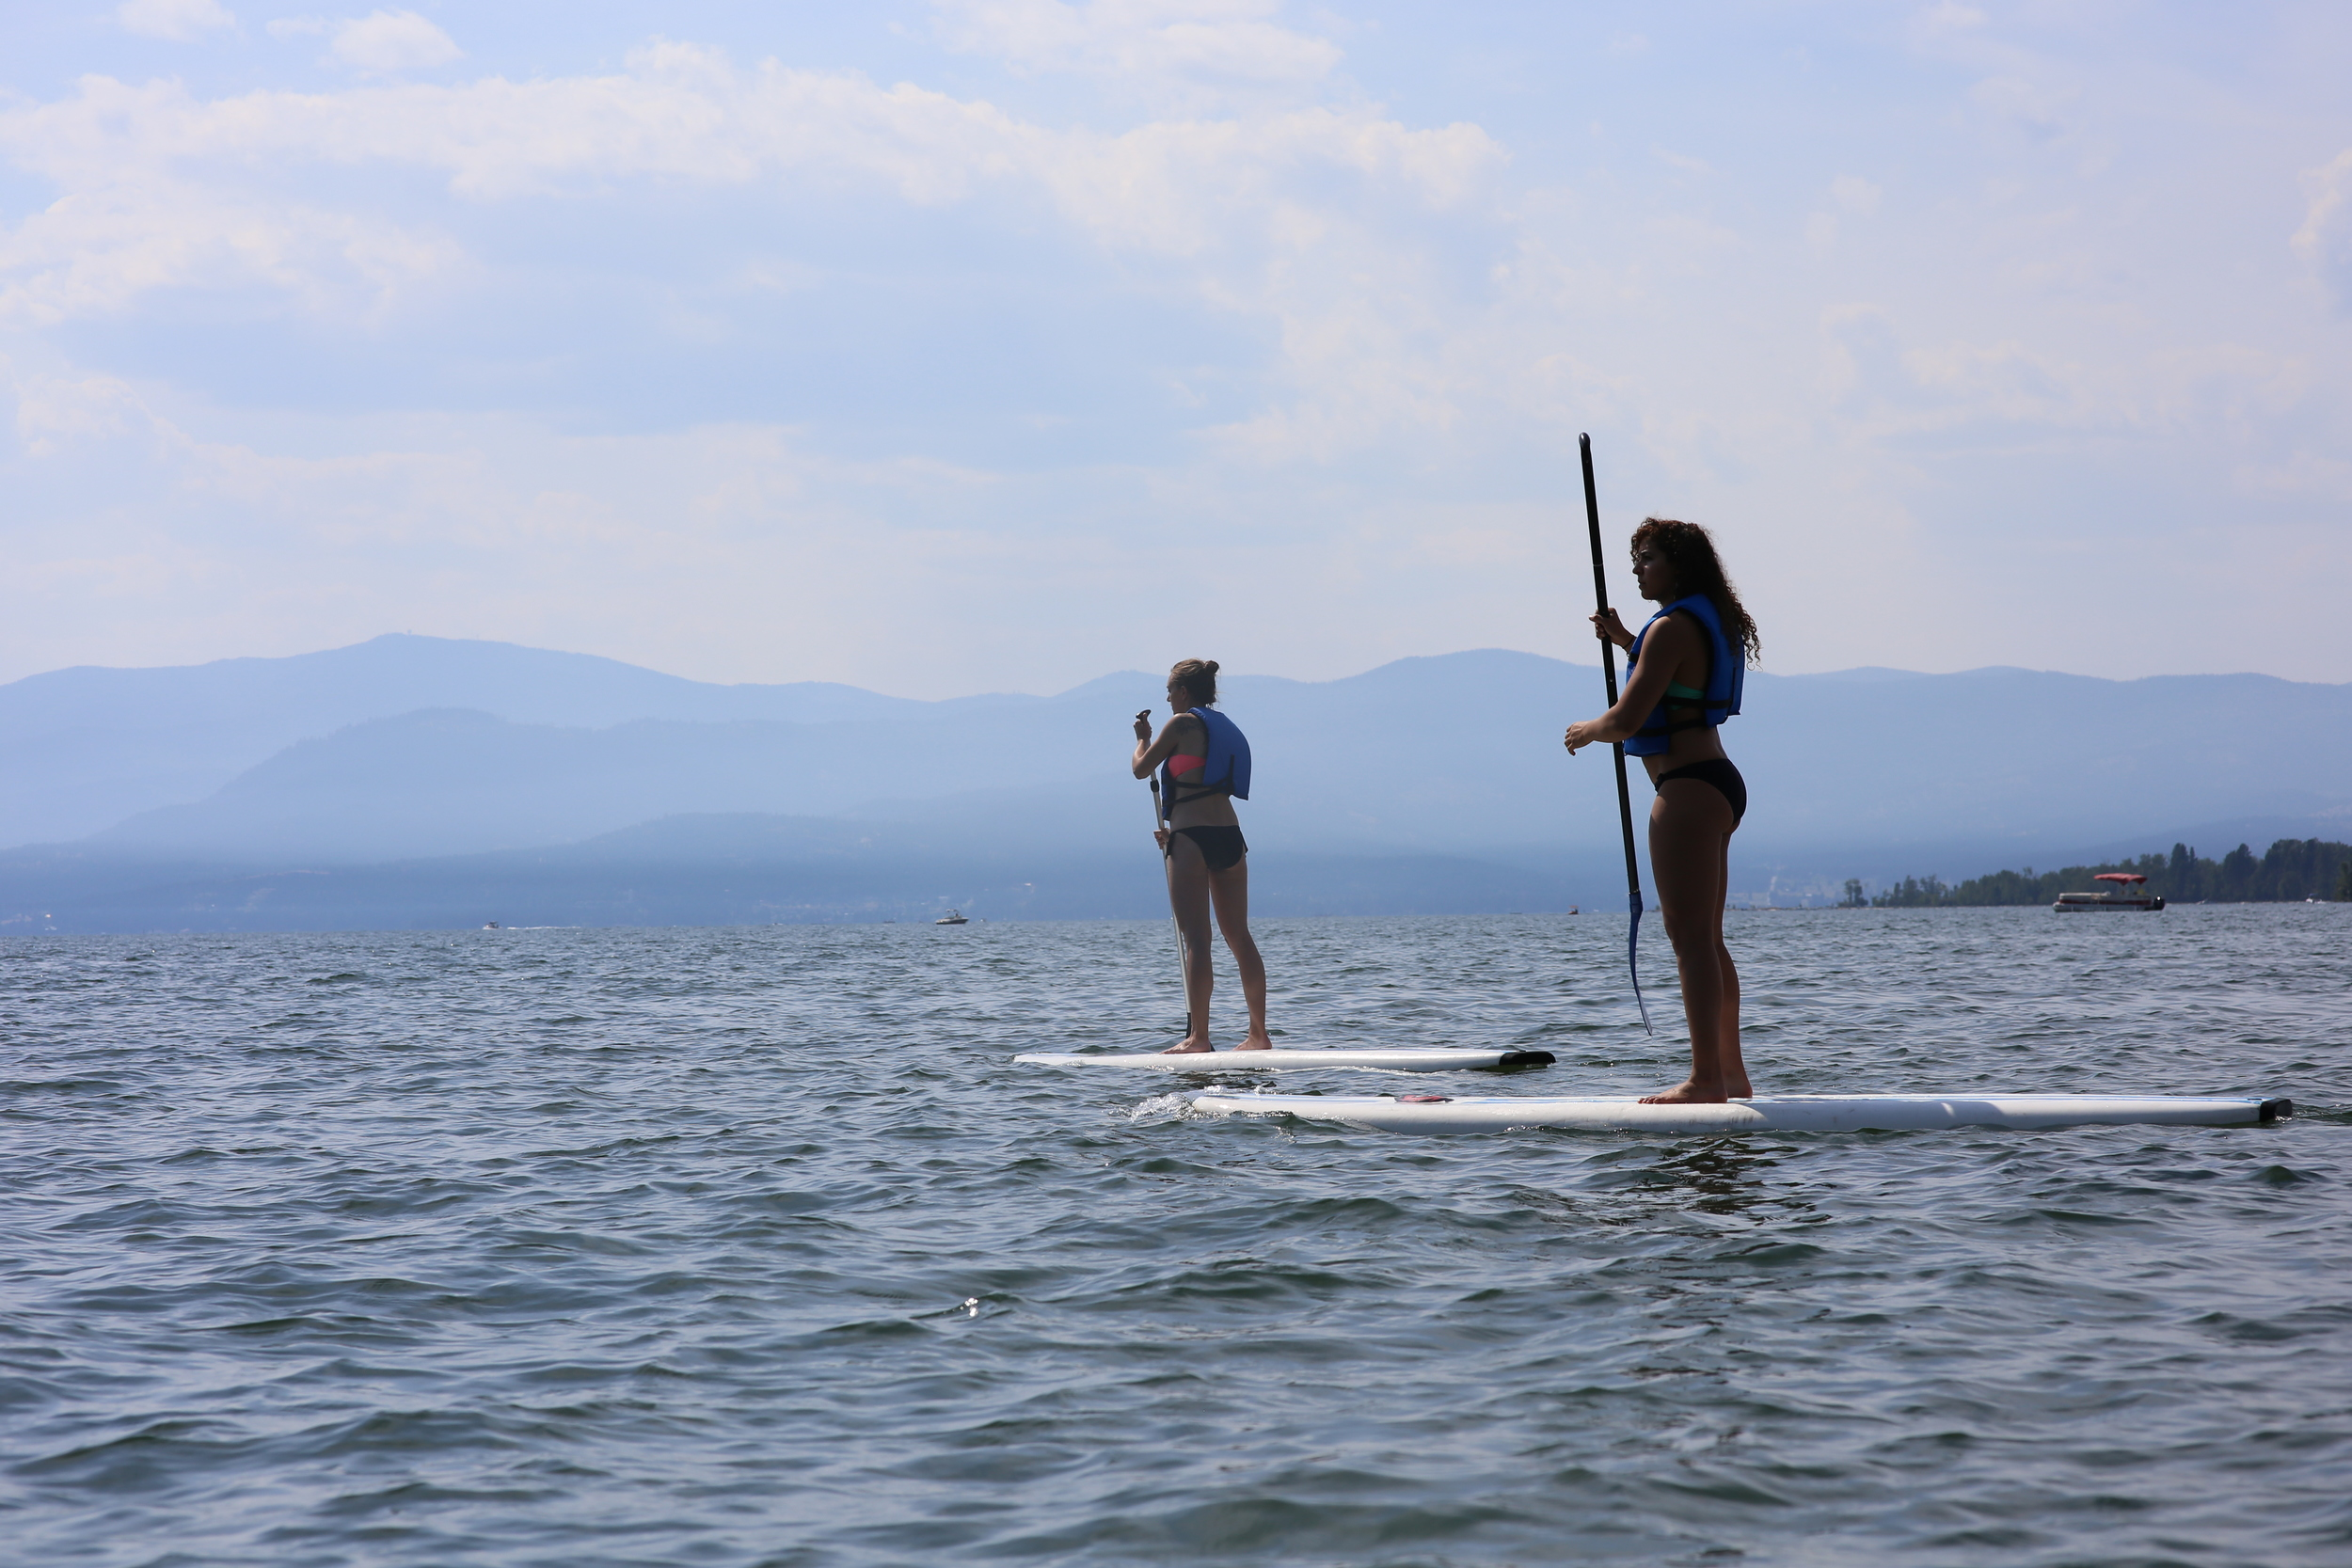 8/9/14  | Sarah Smith and Sarah Al-Khayyal take a break from railroading to paddle board  Flathead Lake in Whitefish, MT.  (Credit: Tyler Metcalfe, National Geographic Travel)